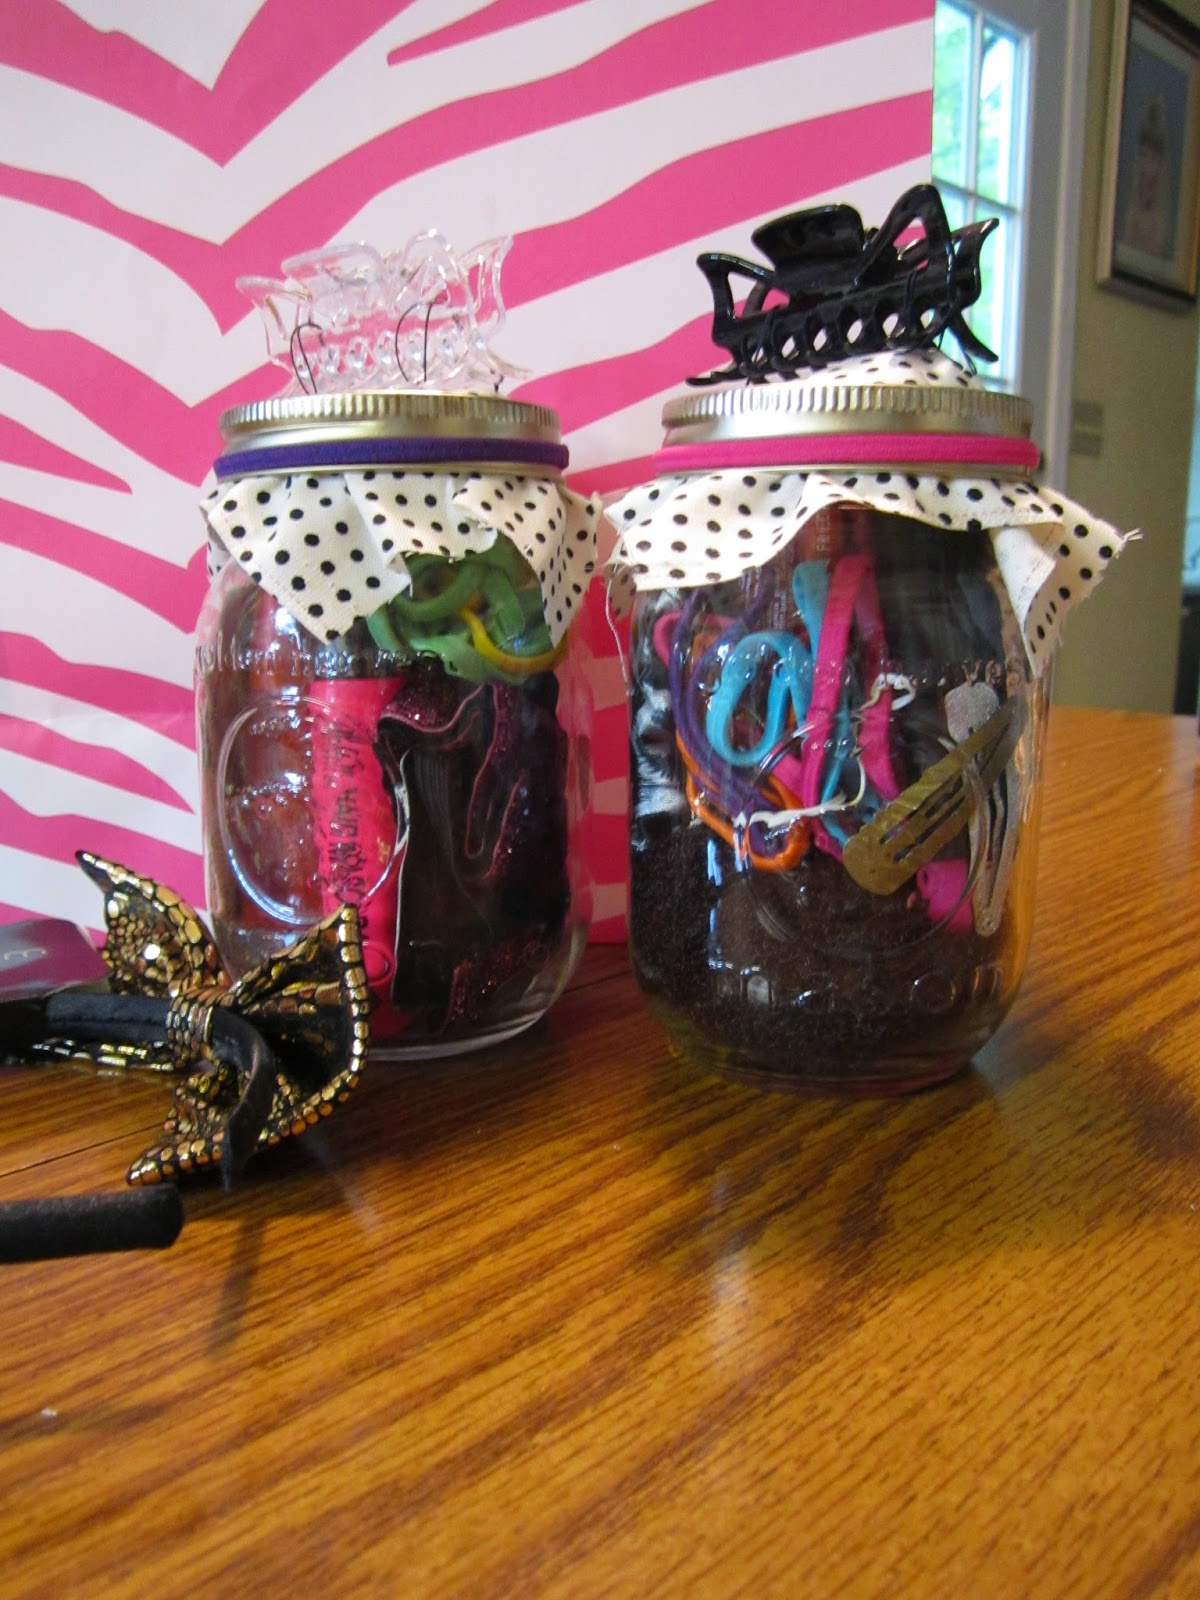 On My Vanity So I Retired Mason Jars And Decided They Would Be The Perfect Way To Package Up Her Gift Turned Out Super Cute Dont You Think